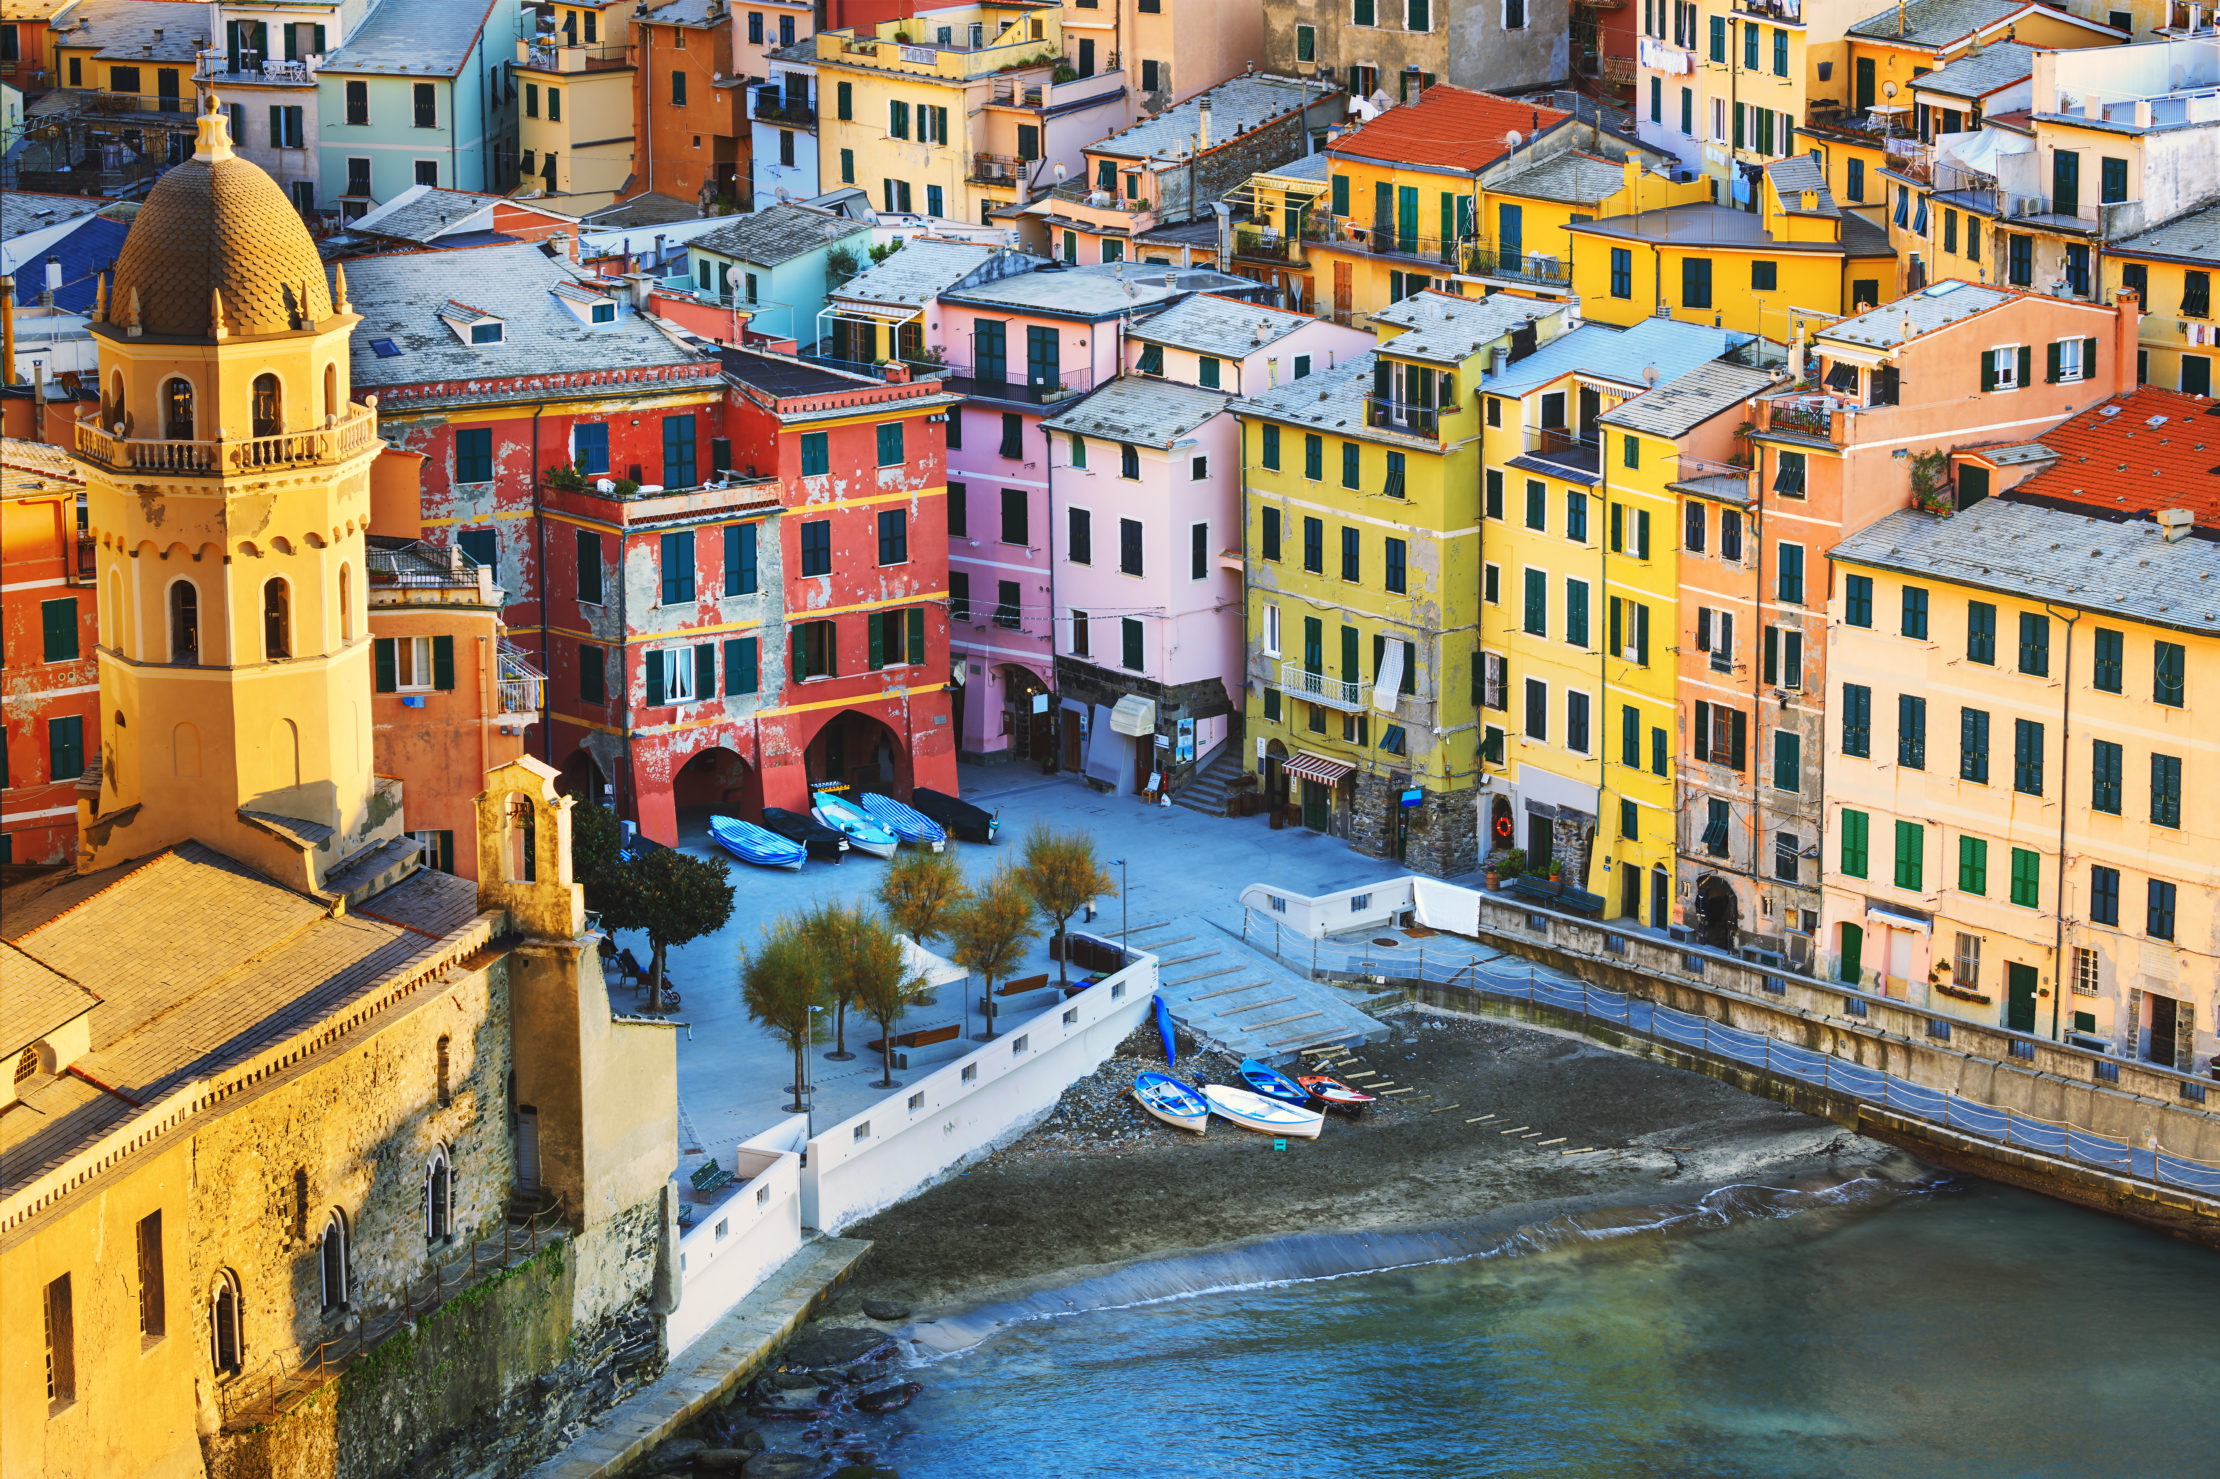 22 Beautiful Photos That Will Make You Fall In Love With Italy - Vernazz, Cinque Terre